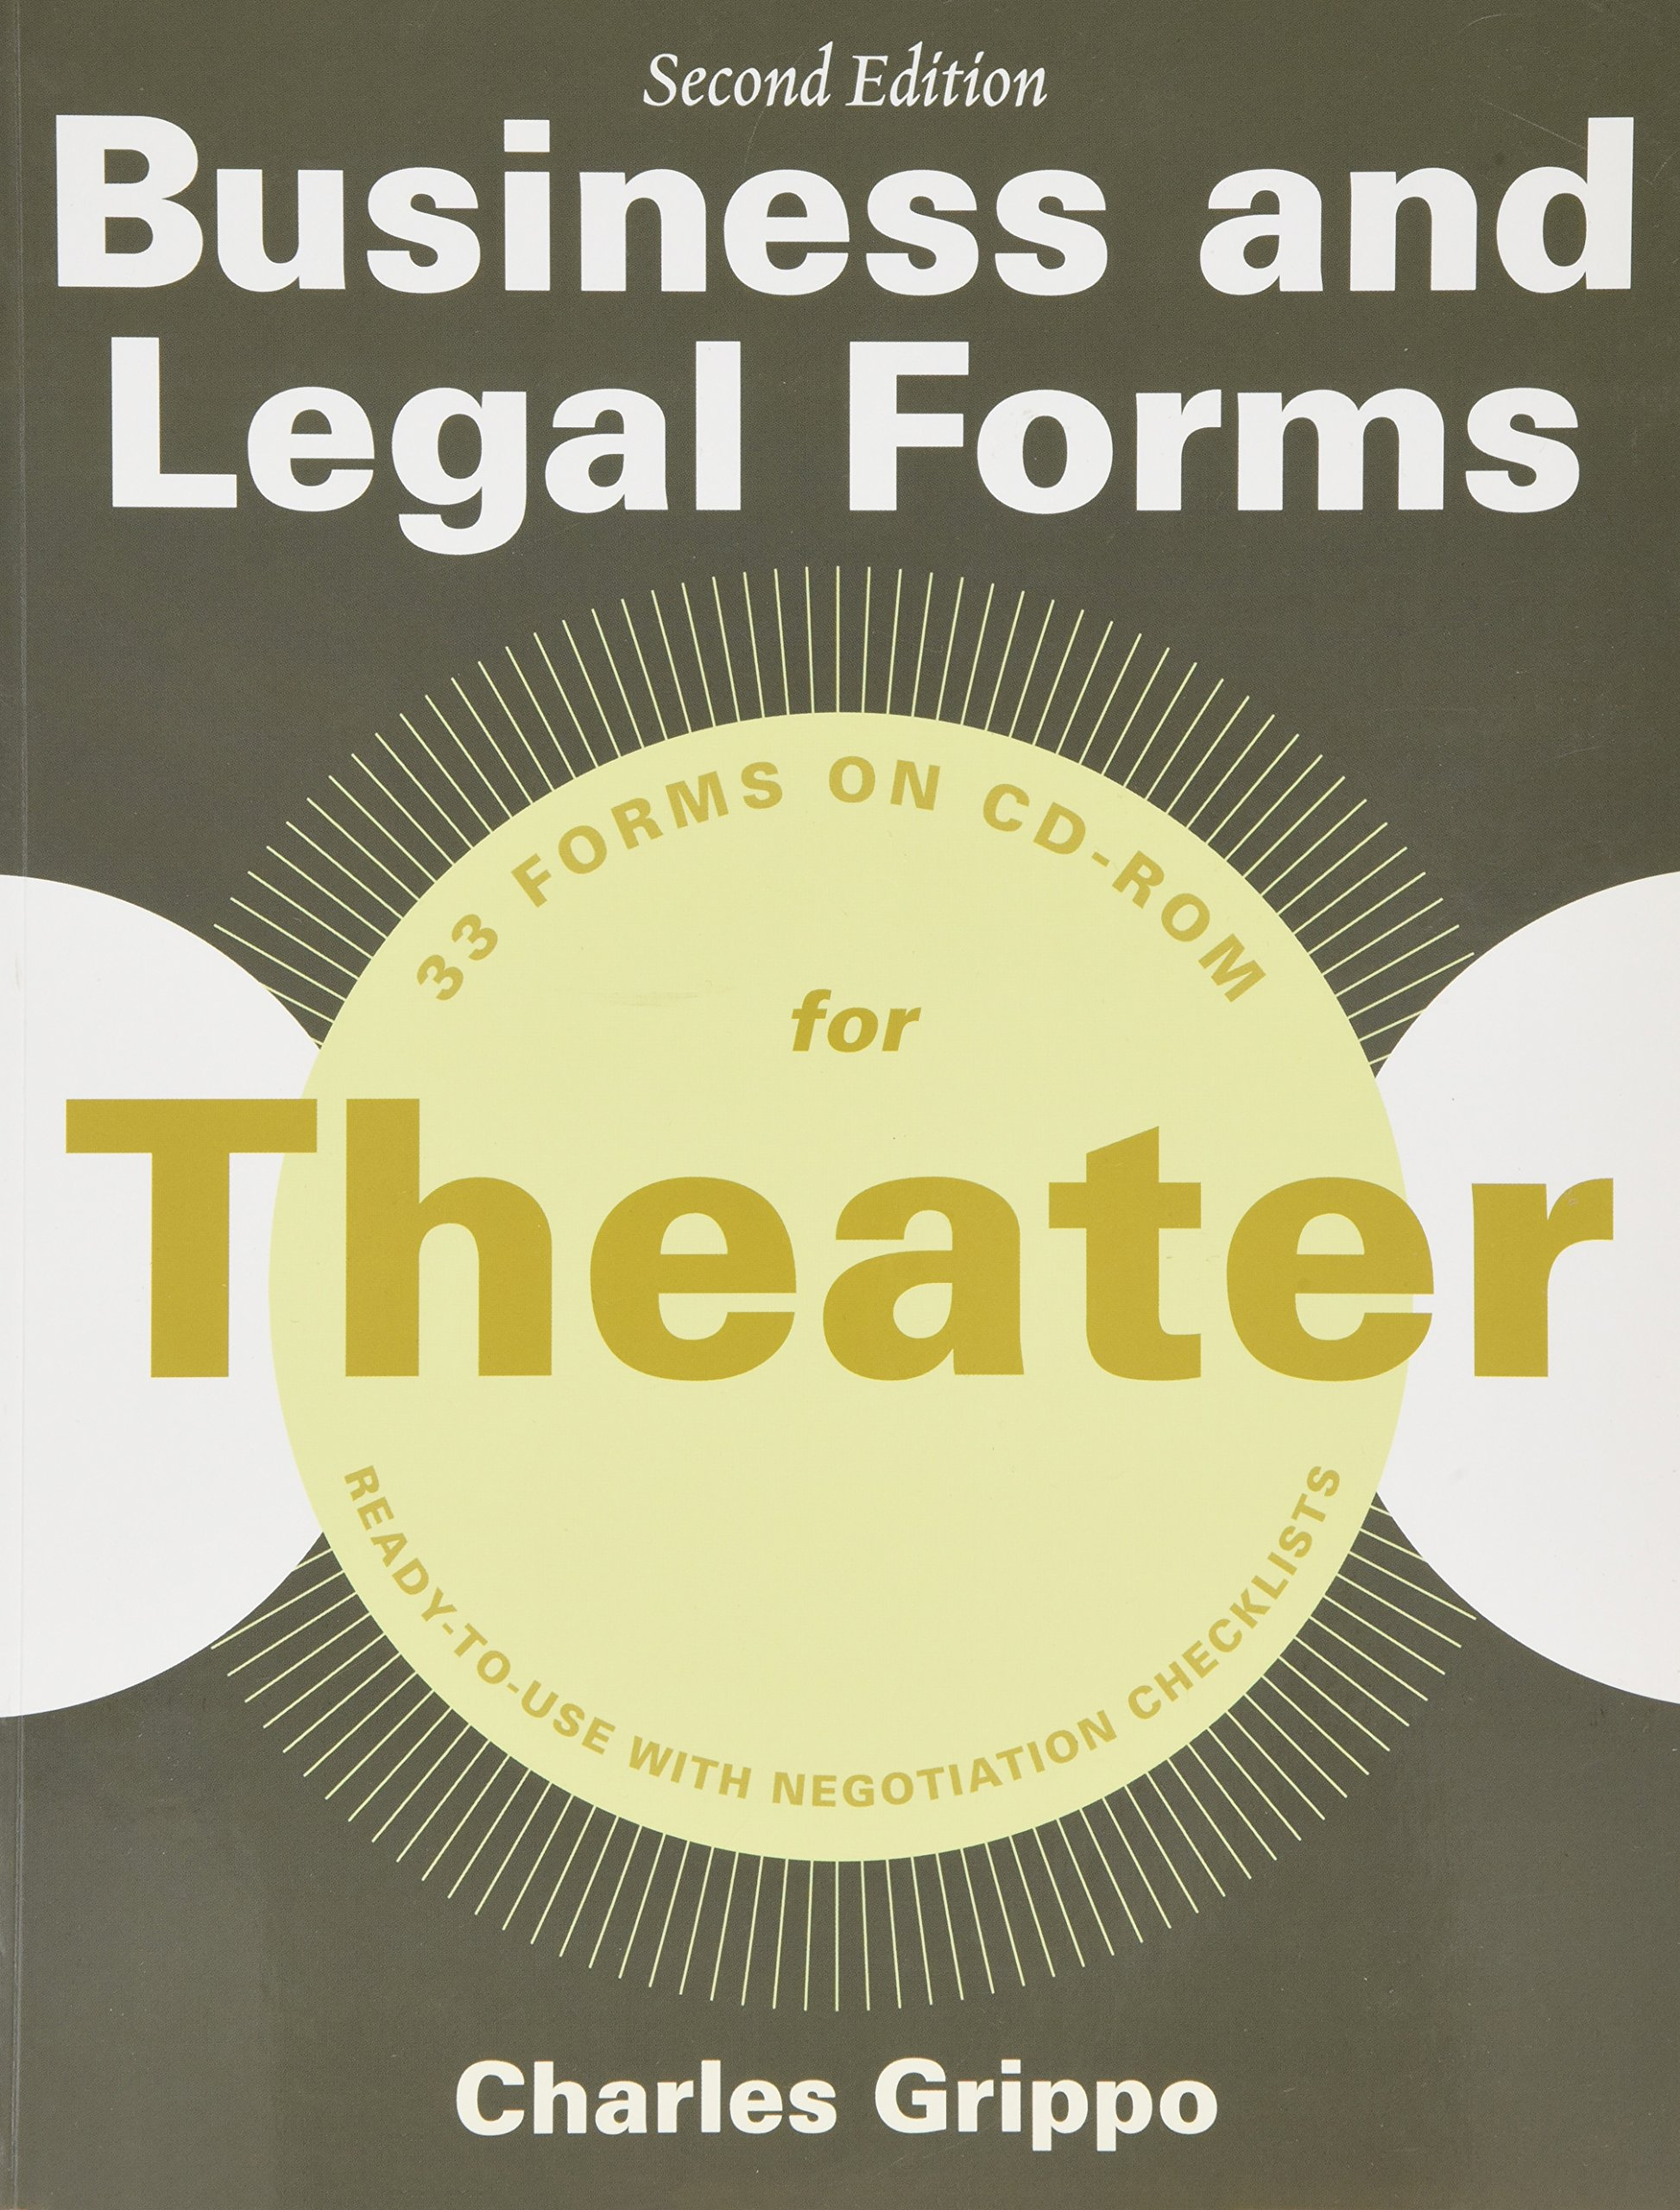 Business and Legal Forms for Theater, Second Edition (Business and Legal Forms Series)